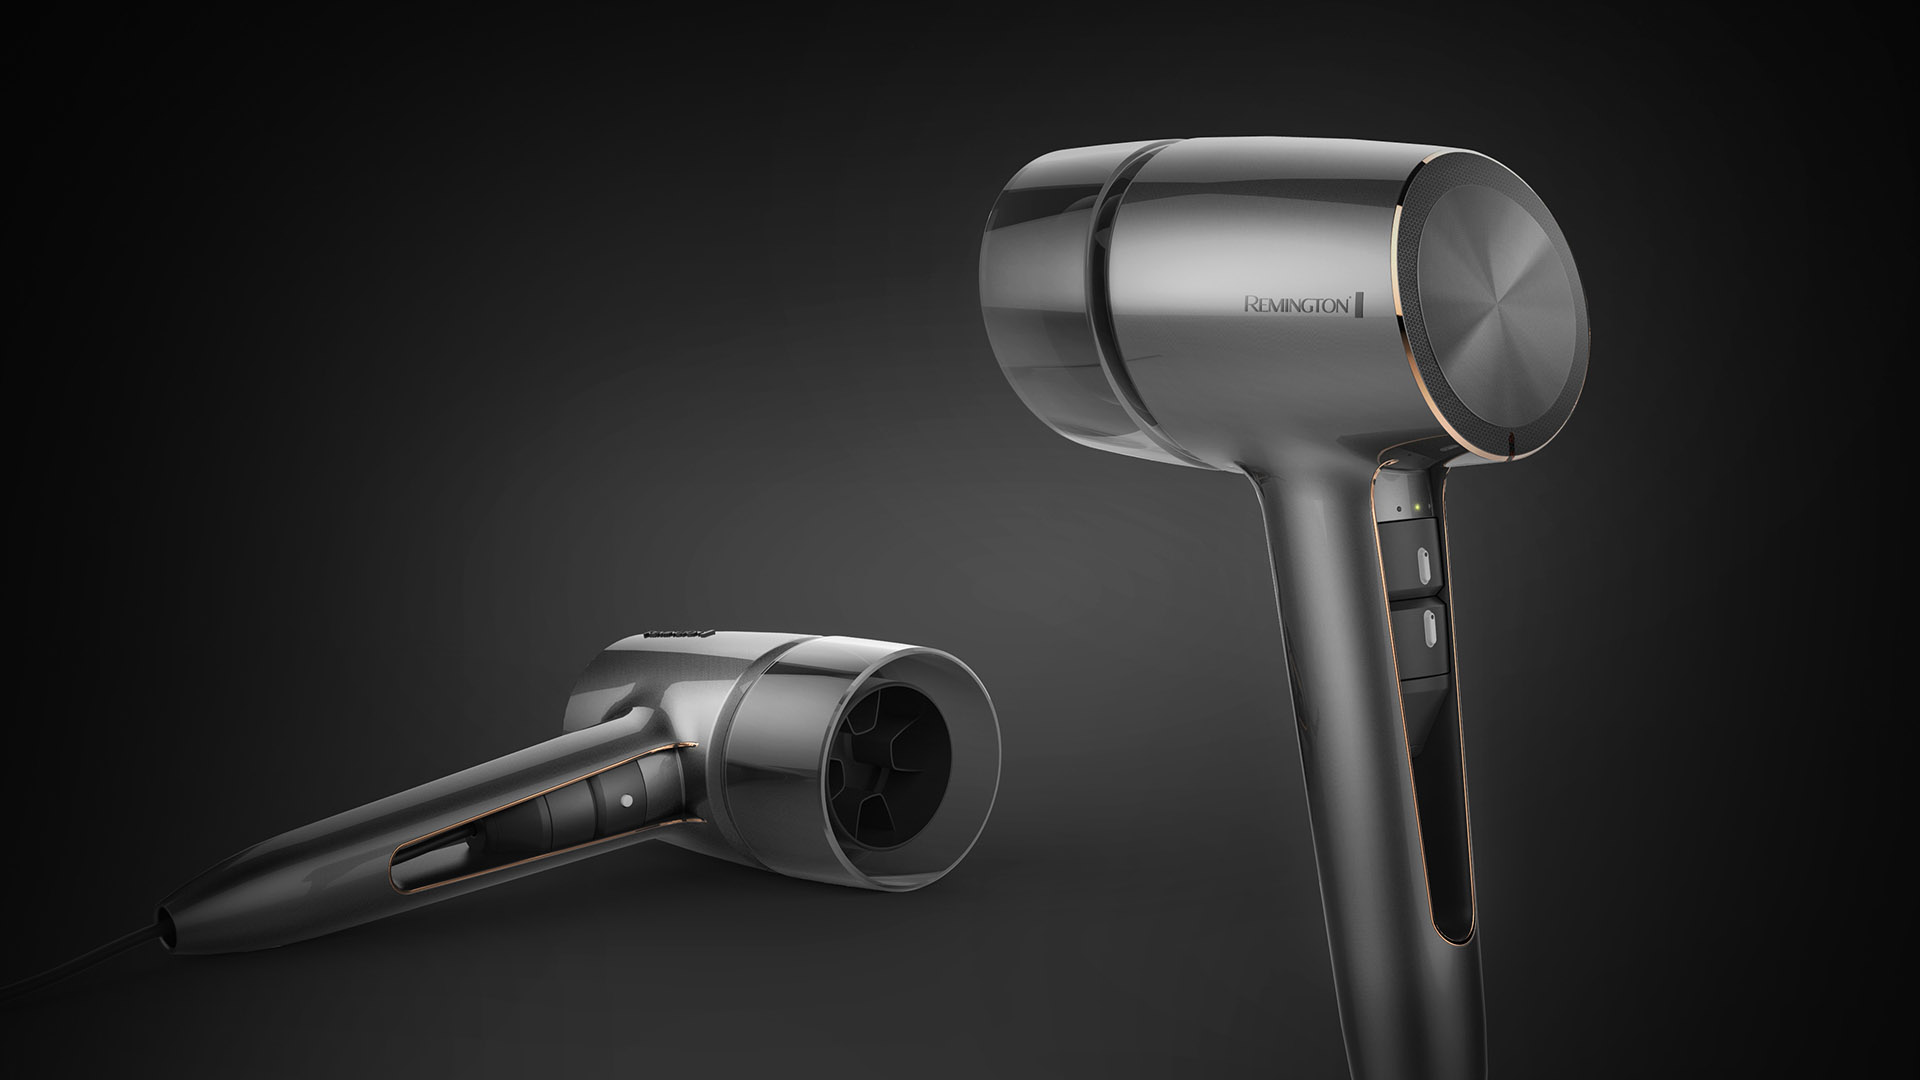 Remington Hair Dryer Design Concept Orlach Design